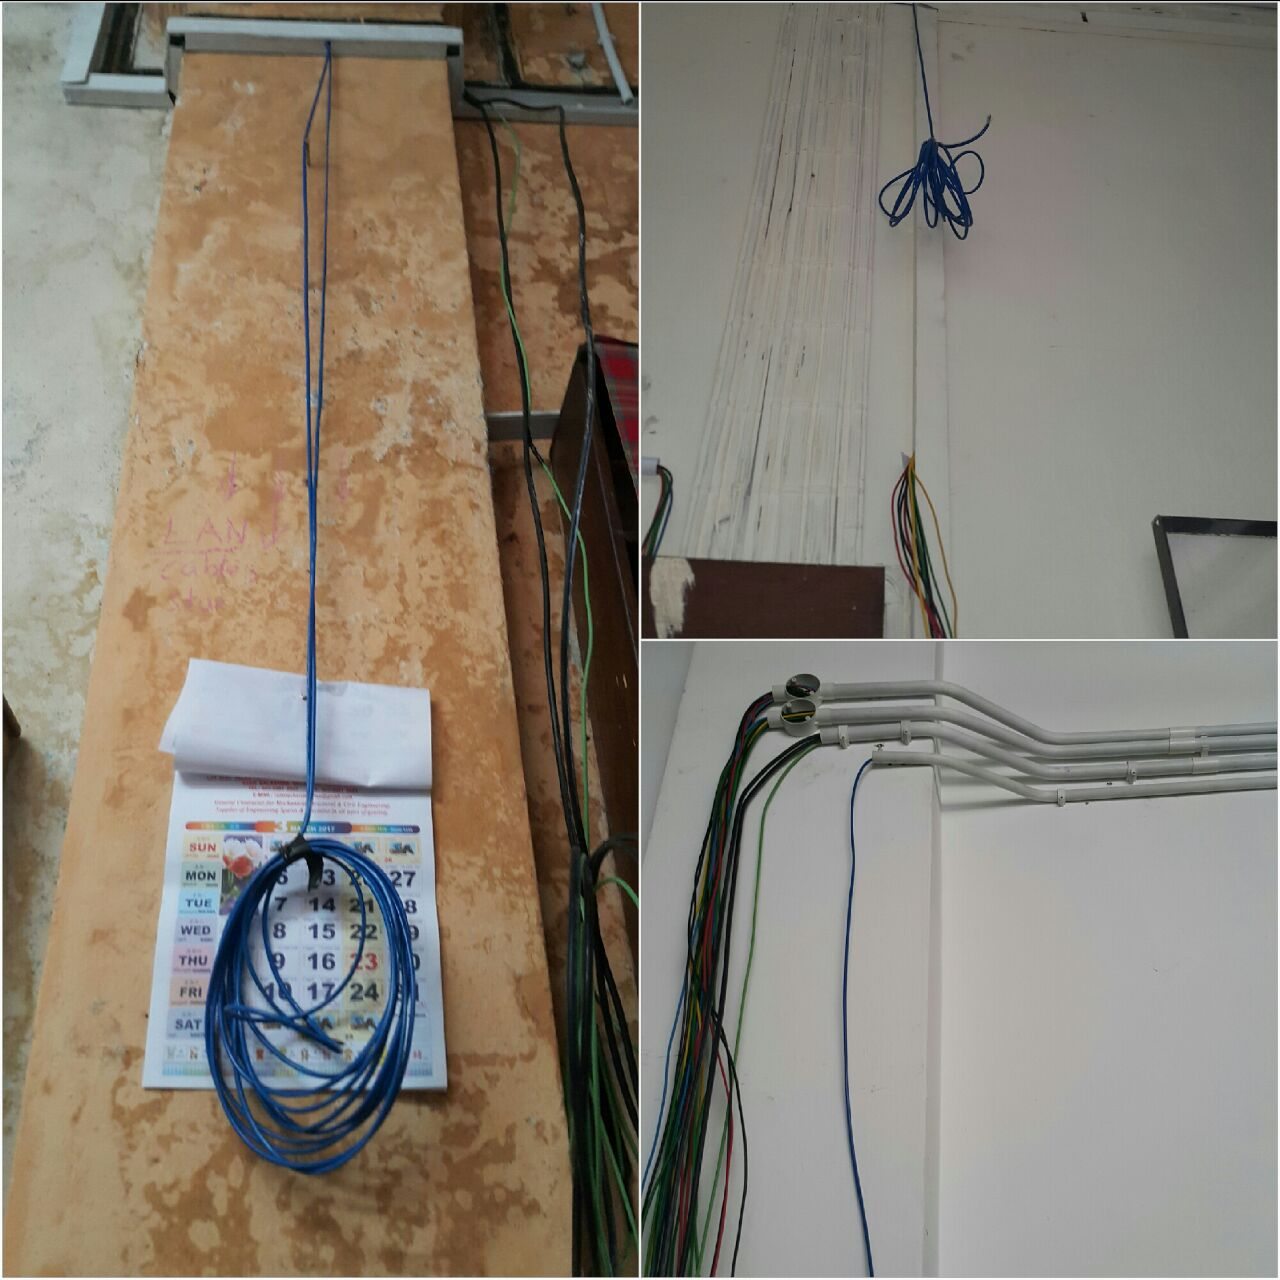 hight resolution of lan cables being installed